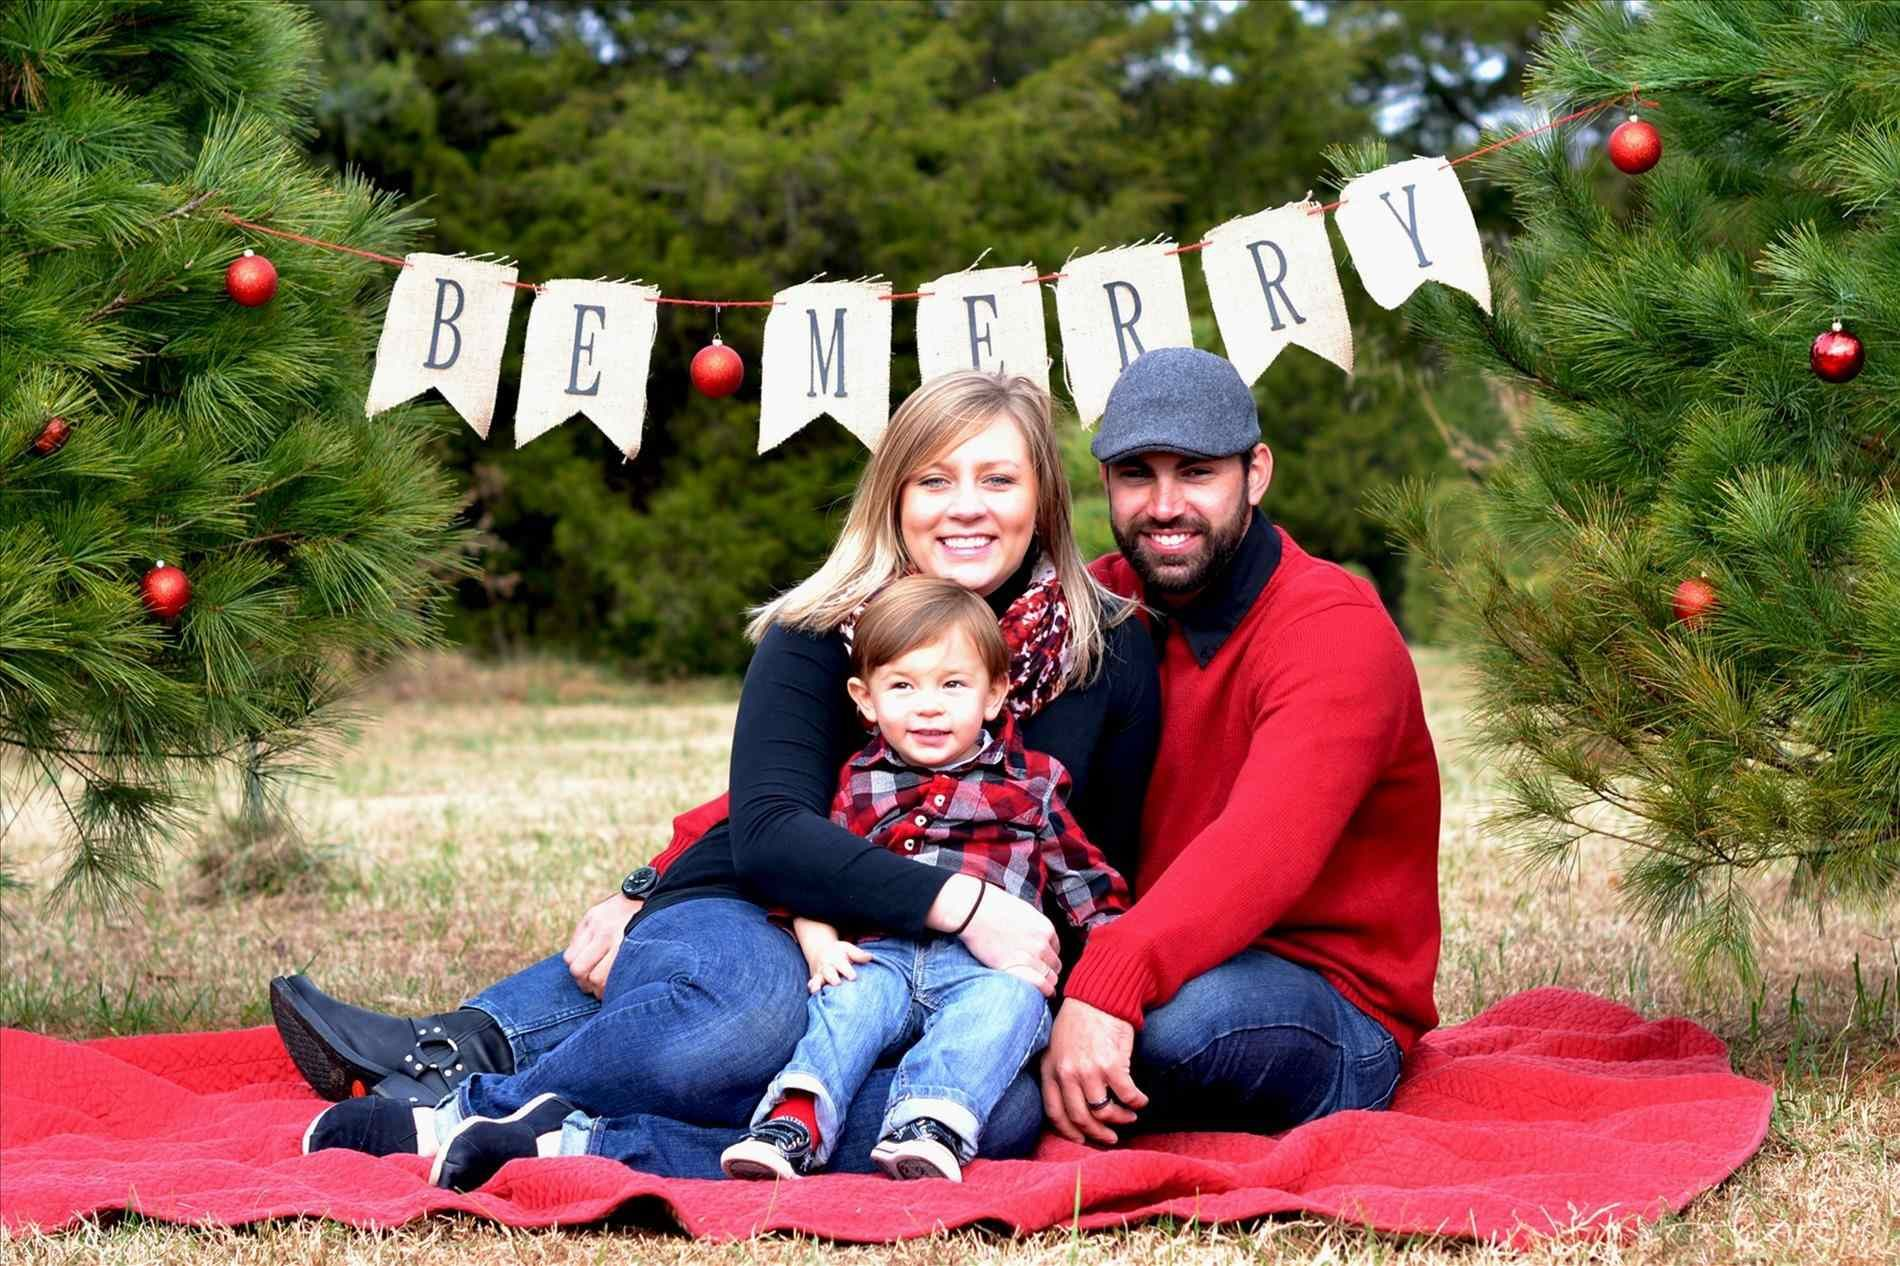 Family Christmas Photography Ideas On Pinterest Pictures Chemineewebsite Pictures Outdoor Family Christmas Photography Chemineewebsite S To Shoot Portraits Port Christmas Tree Farm Photos Family Christmas Pictures Christmas Tree Farm Pictures